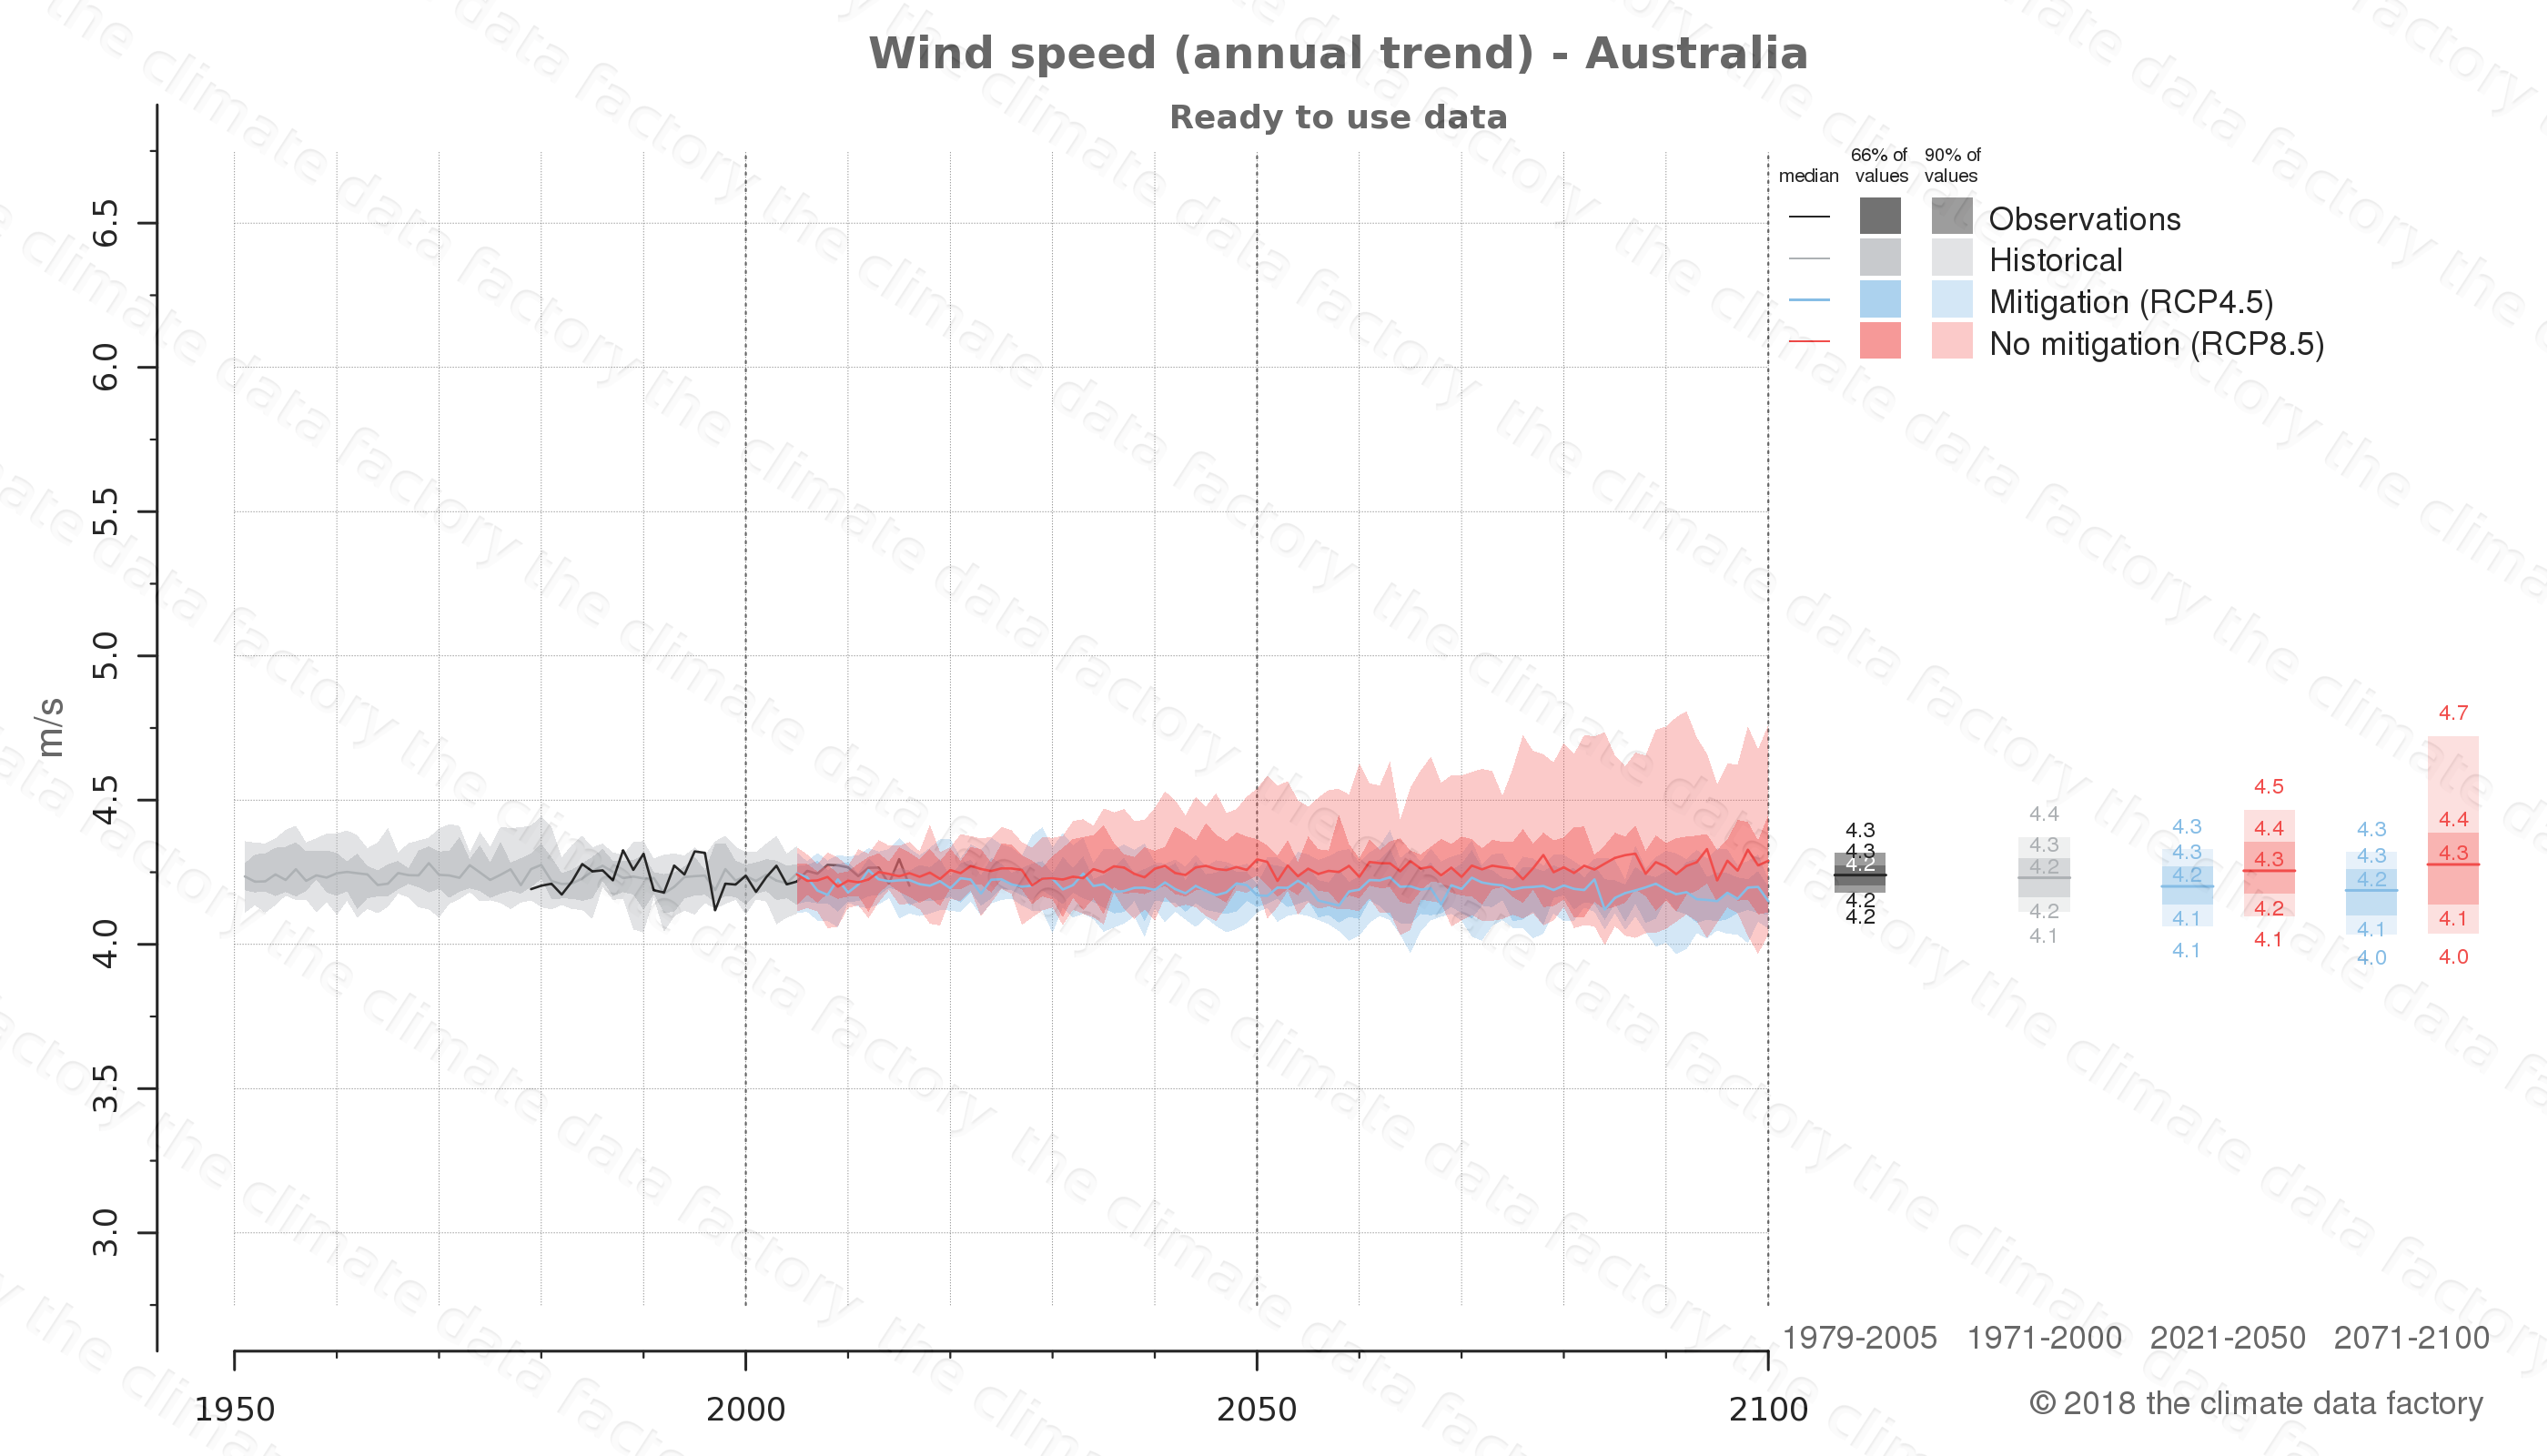 climate change data policy adaptation climate graph country data wind speed australia australasia